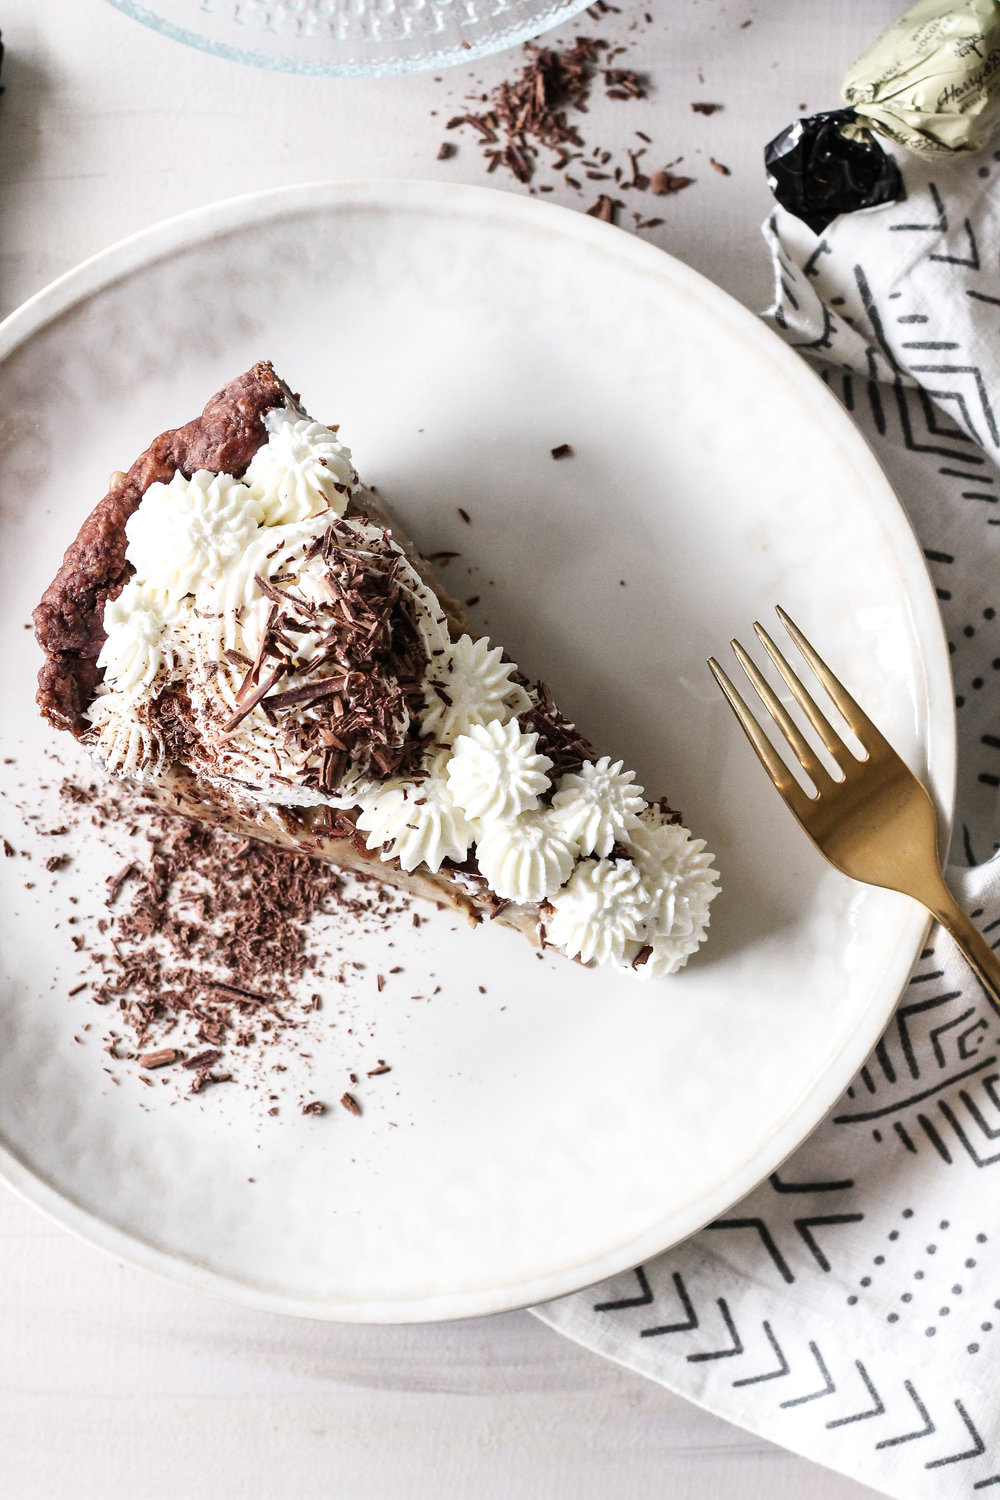 Chocolate cream pie meets your morning brew in this incredibly decadent Coffee Cream Pie.  Click through to find this recipe and more on www.pedanticfoodie.com!